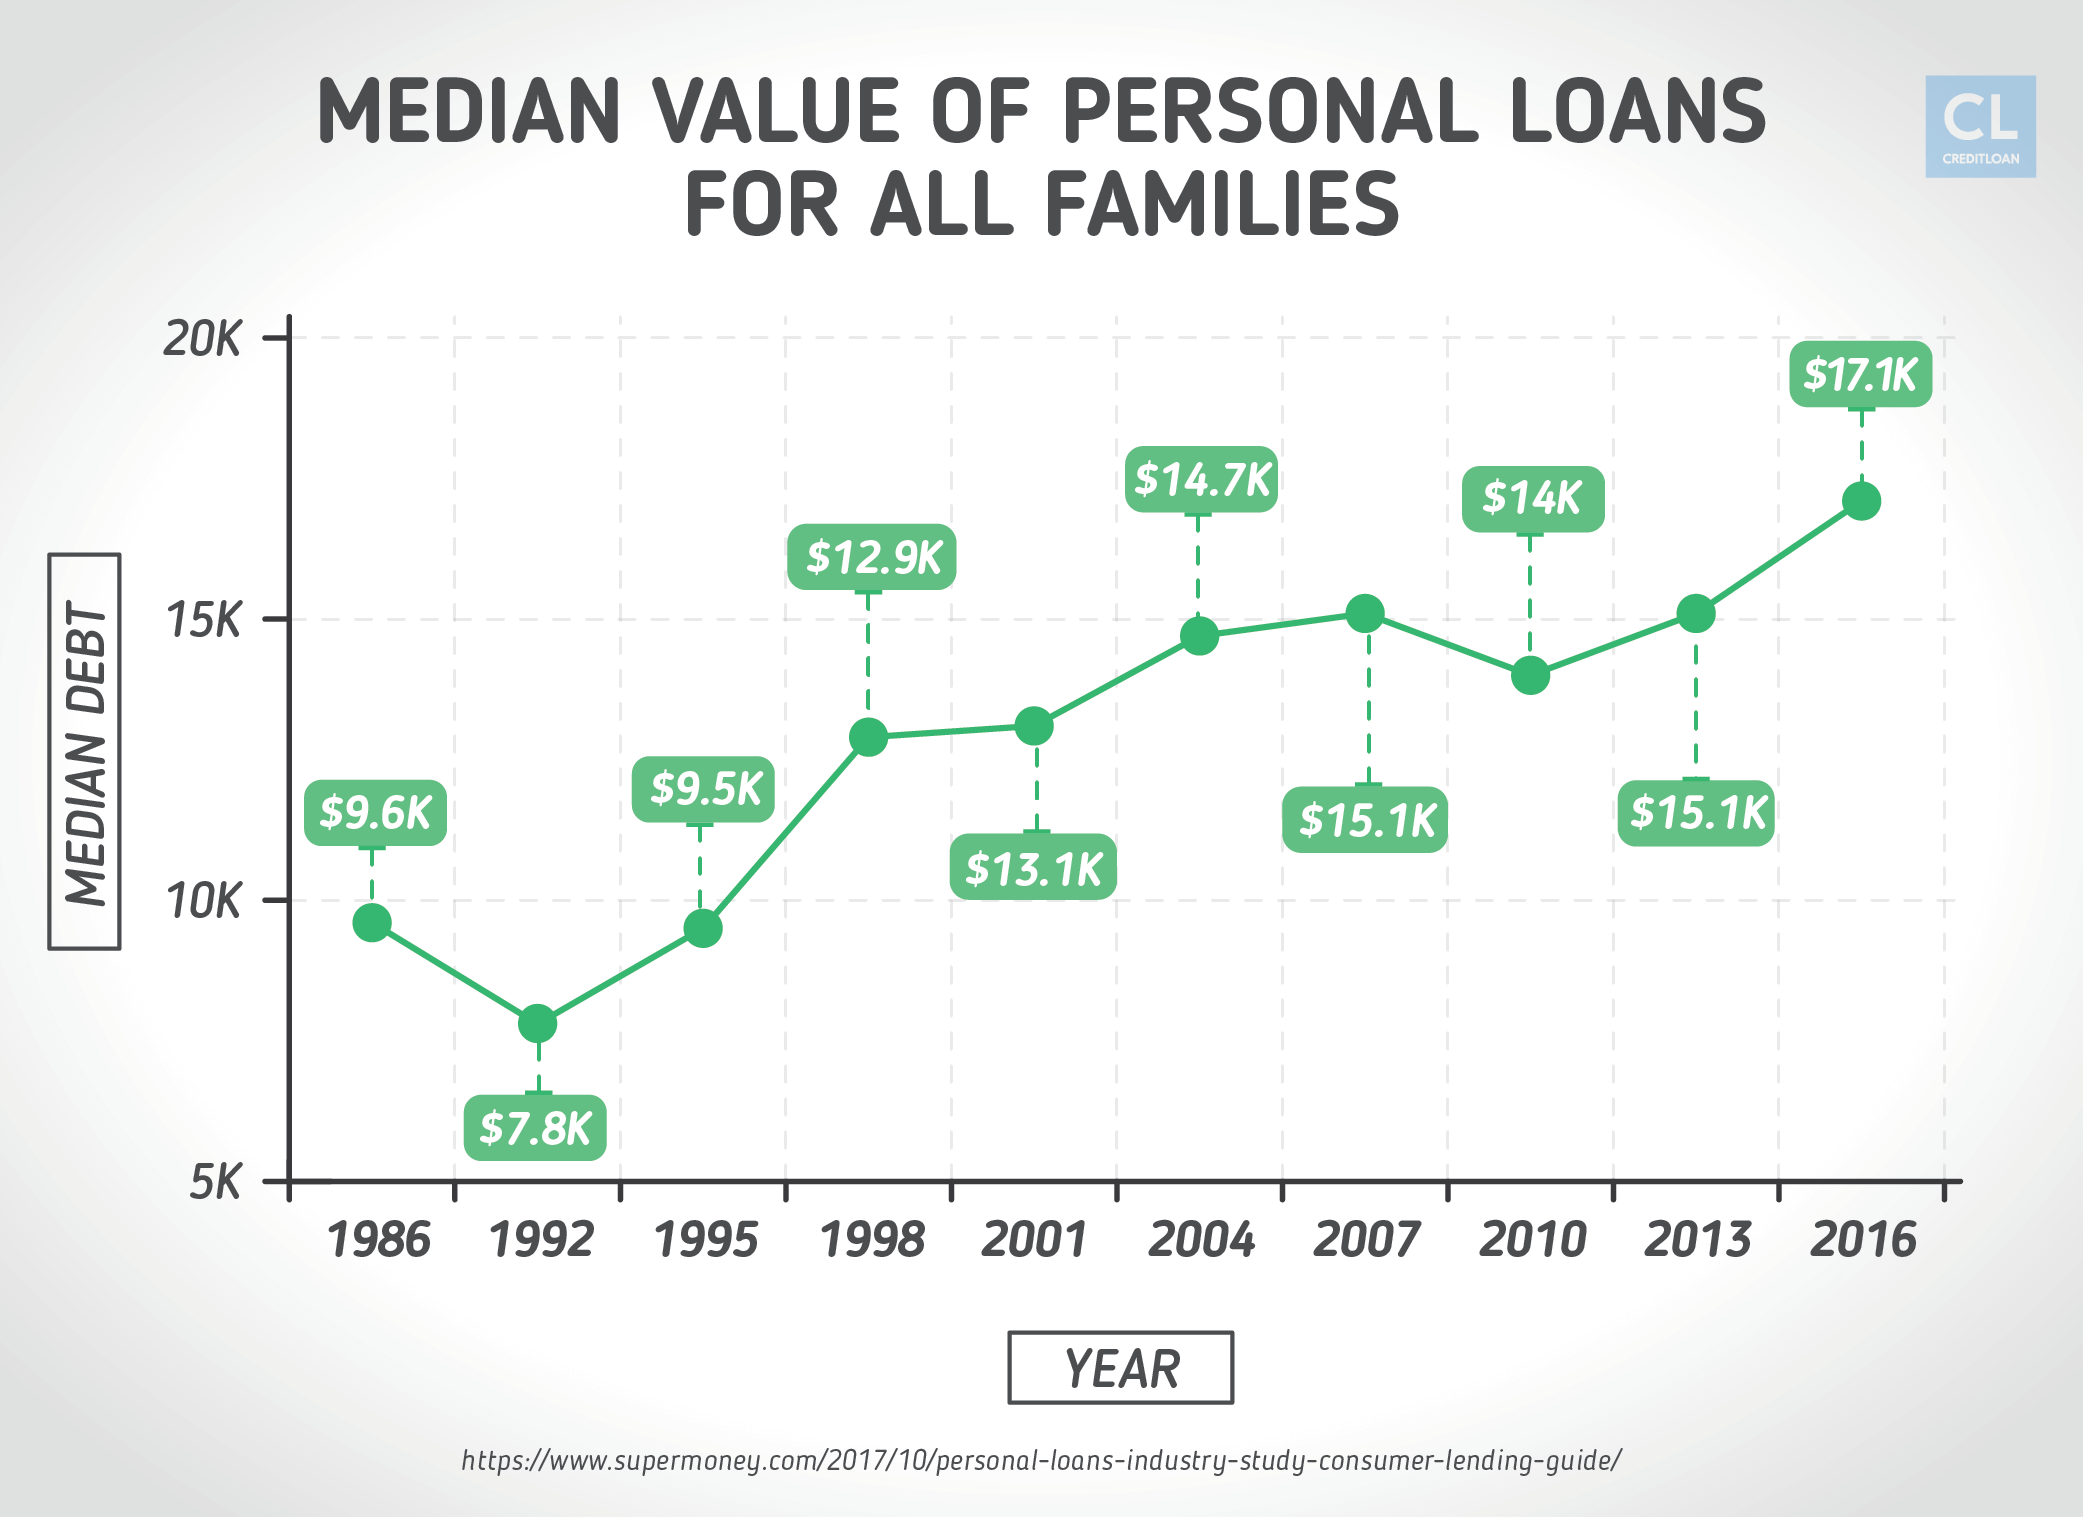 Median Value of Personal Loans 1986-2016